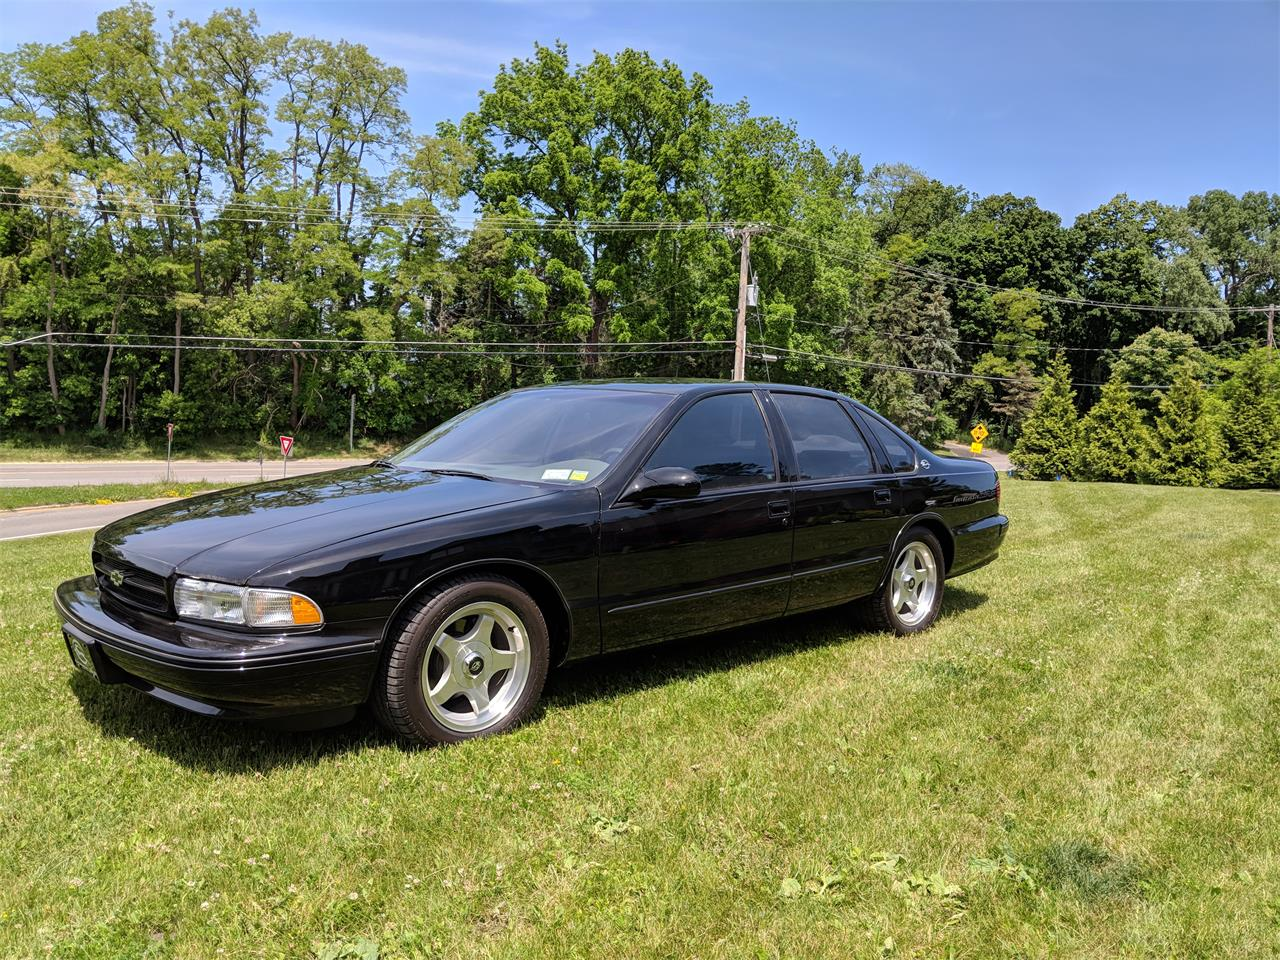 Large Picture of '96 Impala SS located in Webster New York - $20,000.00 Offered by a Private Seller - NLTY